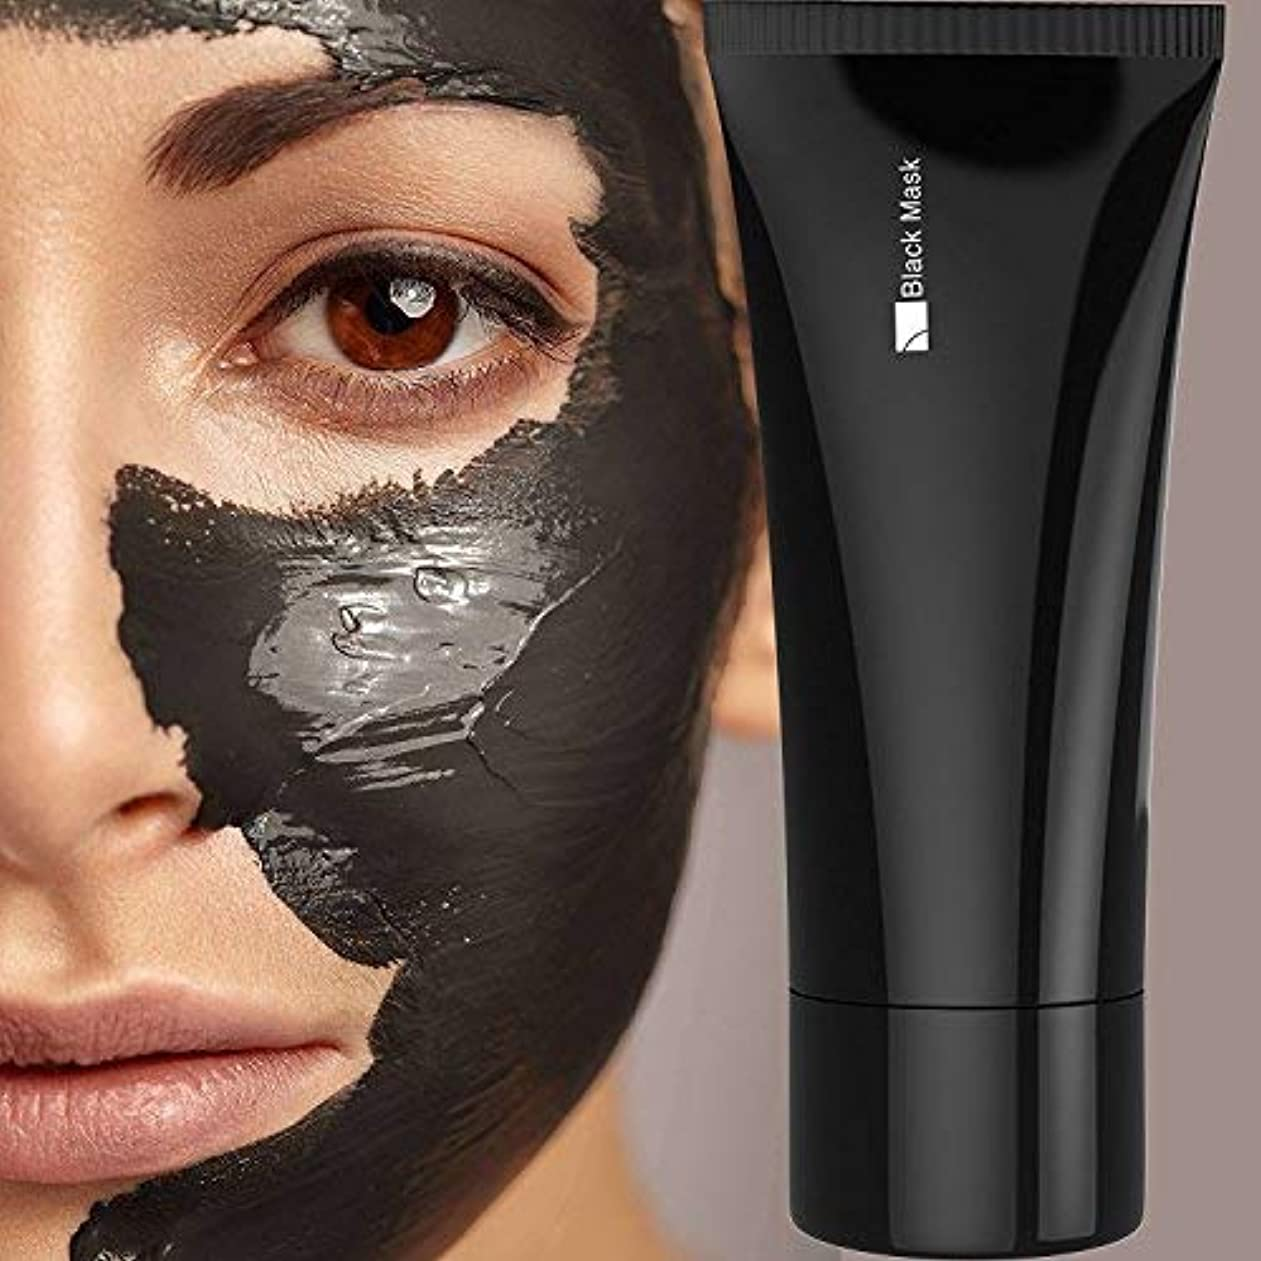 シンカン宙返りトーナメントFace apeel Blackhead Remover Cleaner Purifying Deep Cleansing Acne Black Mud Face Mask Peel-off